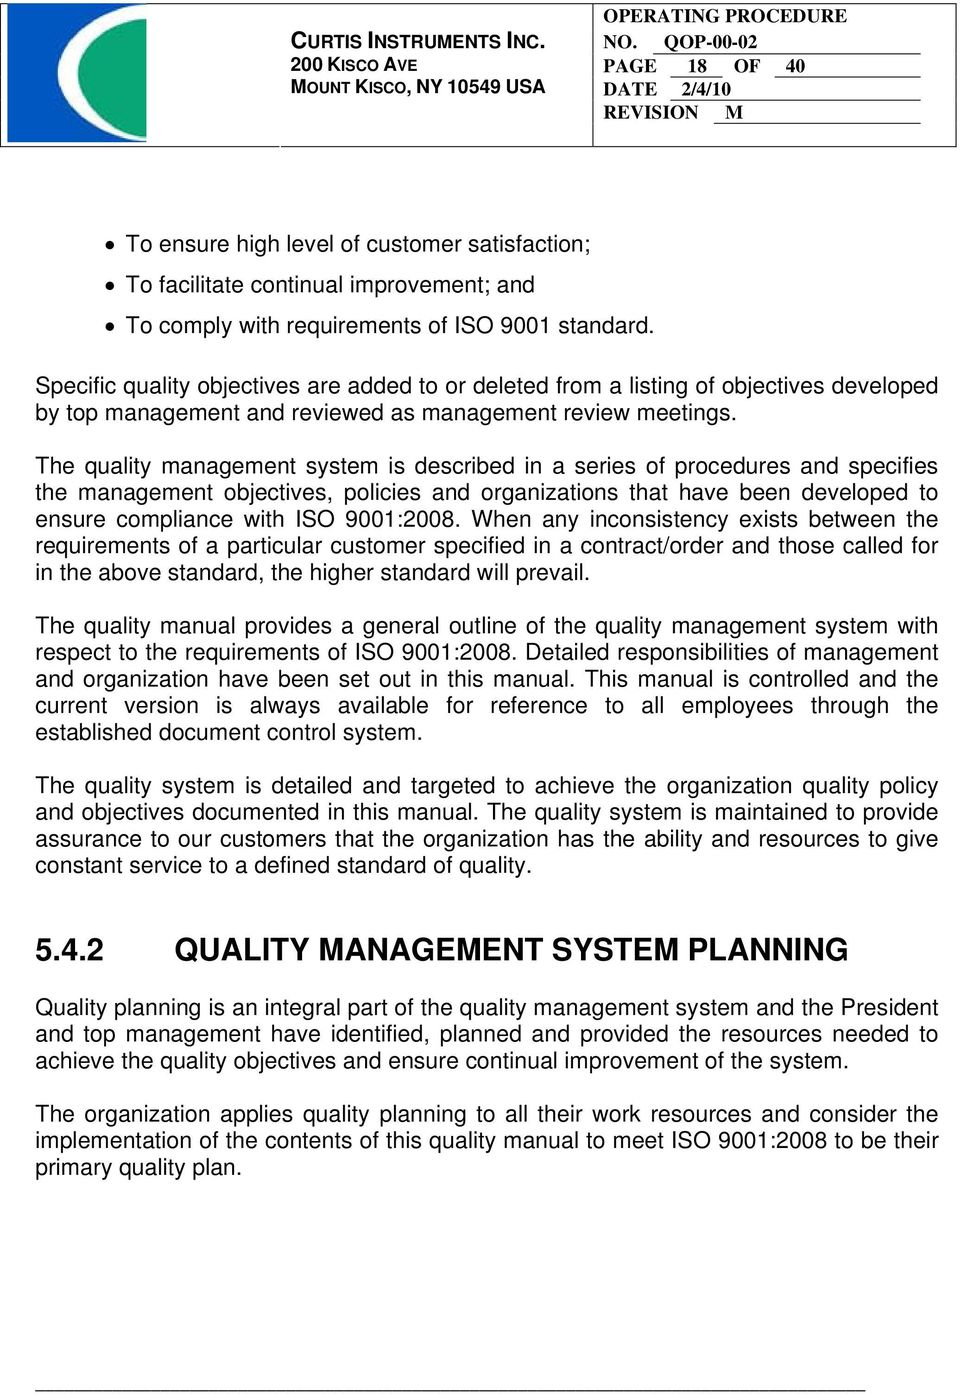 The quality management system is described in a series of procedures and specifies the management objectives, policies and organizations that have been developed to ensure compliance with ISO